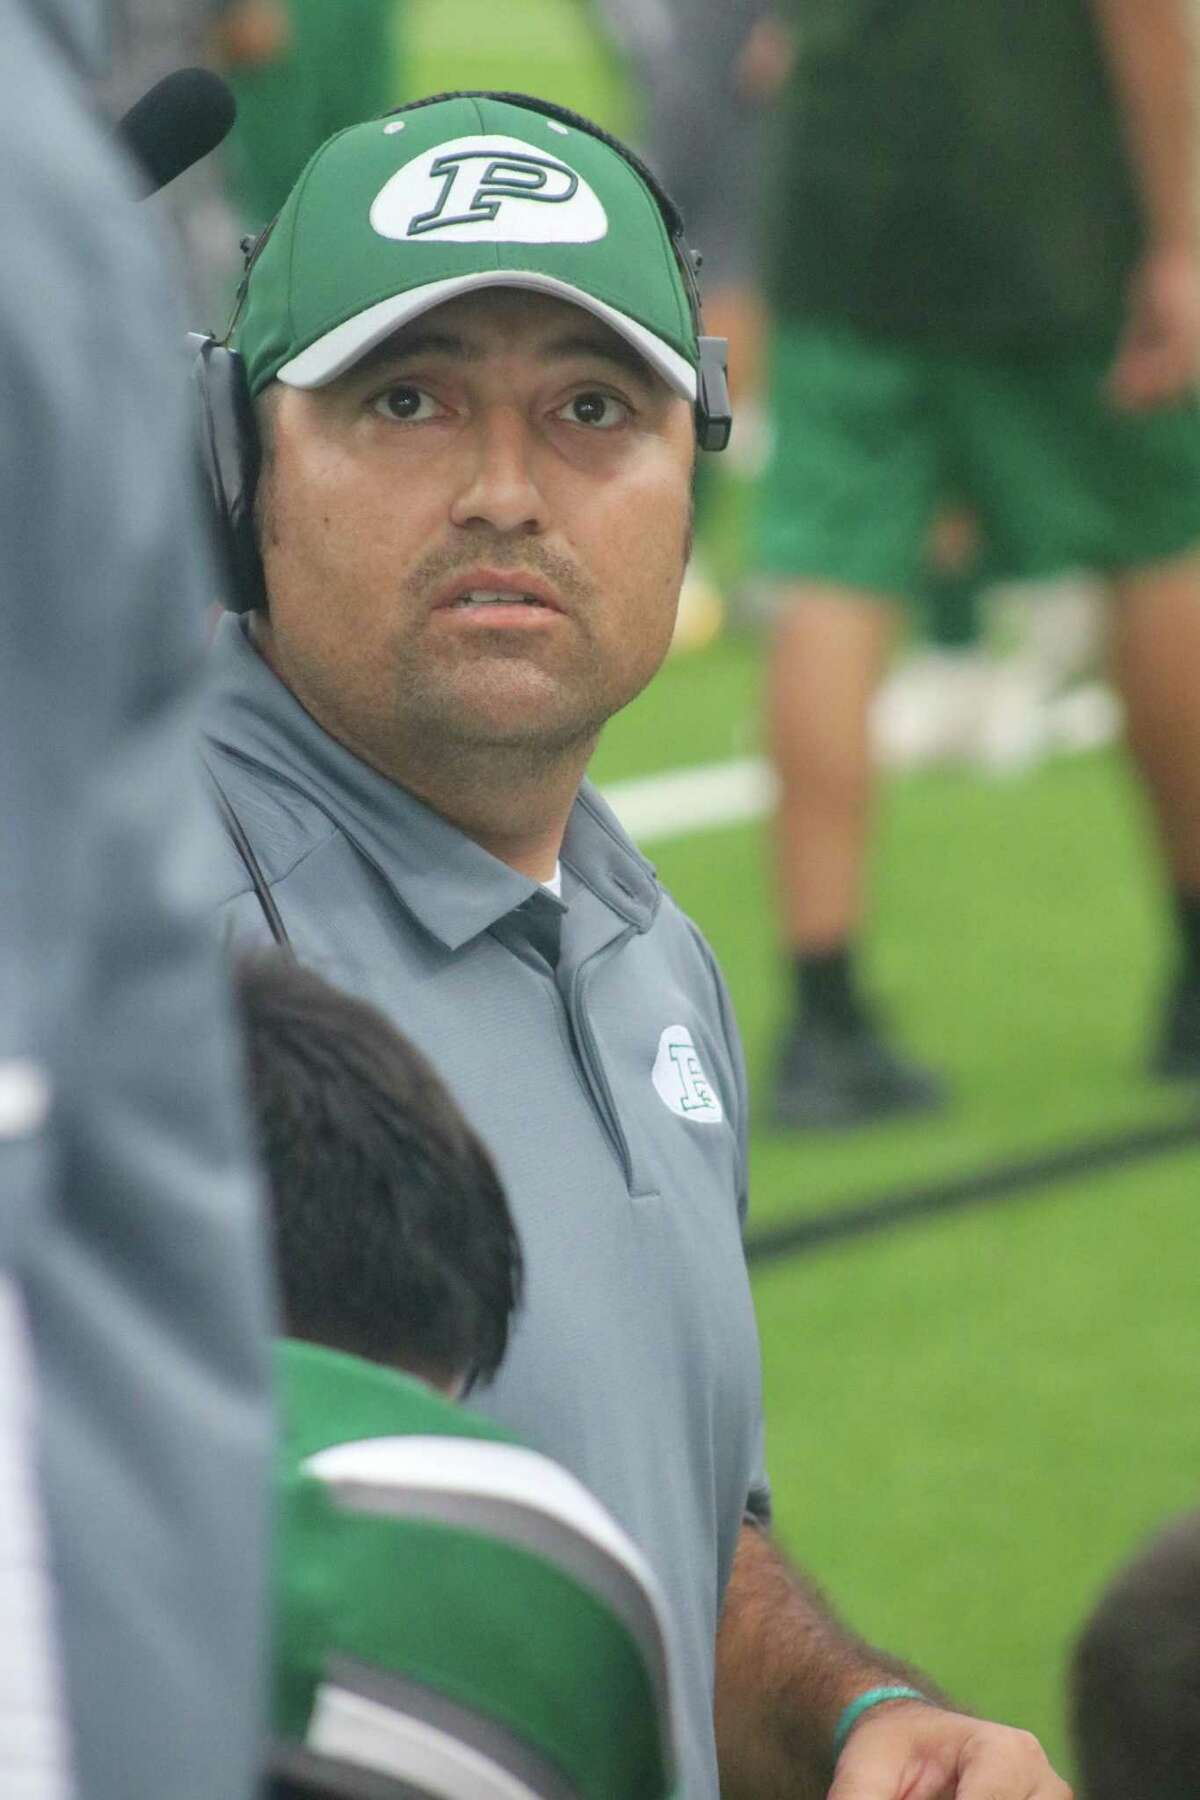 David Zapien, preparing to huddle with Pasadena's offensive players this past season, has formally been named as the program's new head football coach, following approval by the school board Tuesday night. Pasadena's homegrown kid becomes just the fourth head coach in the last 29 years.